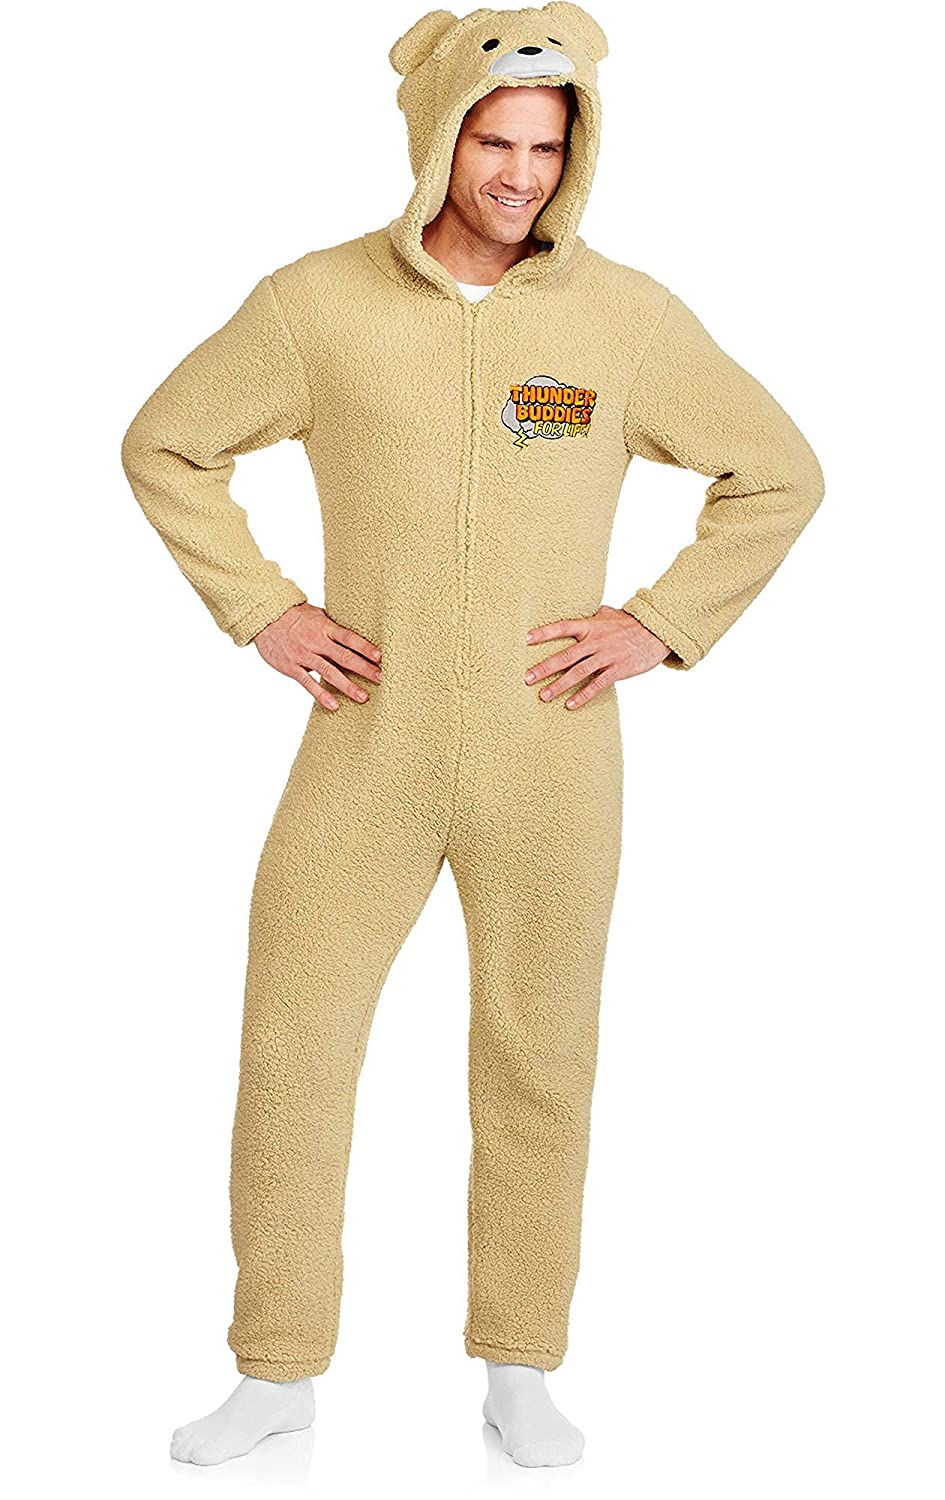 fb04602eec34 Amazon.com  Ted Men s Thunder Buddies for Life One Piece Union Suit ...